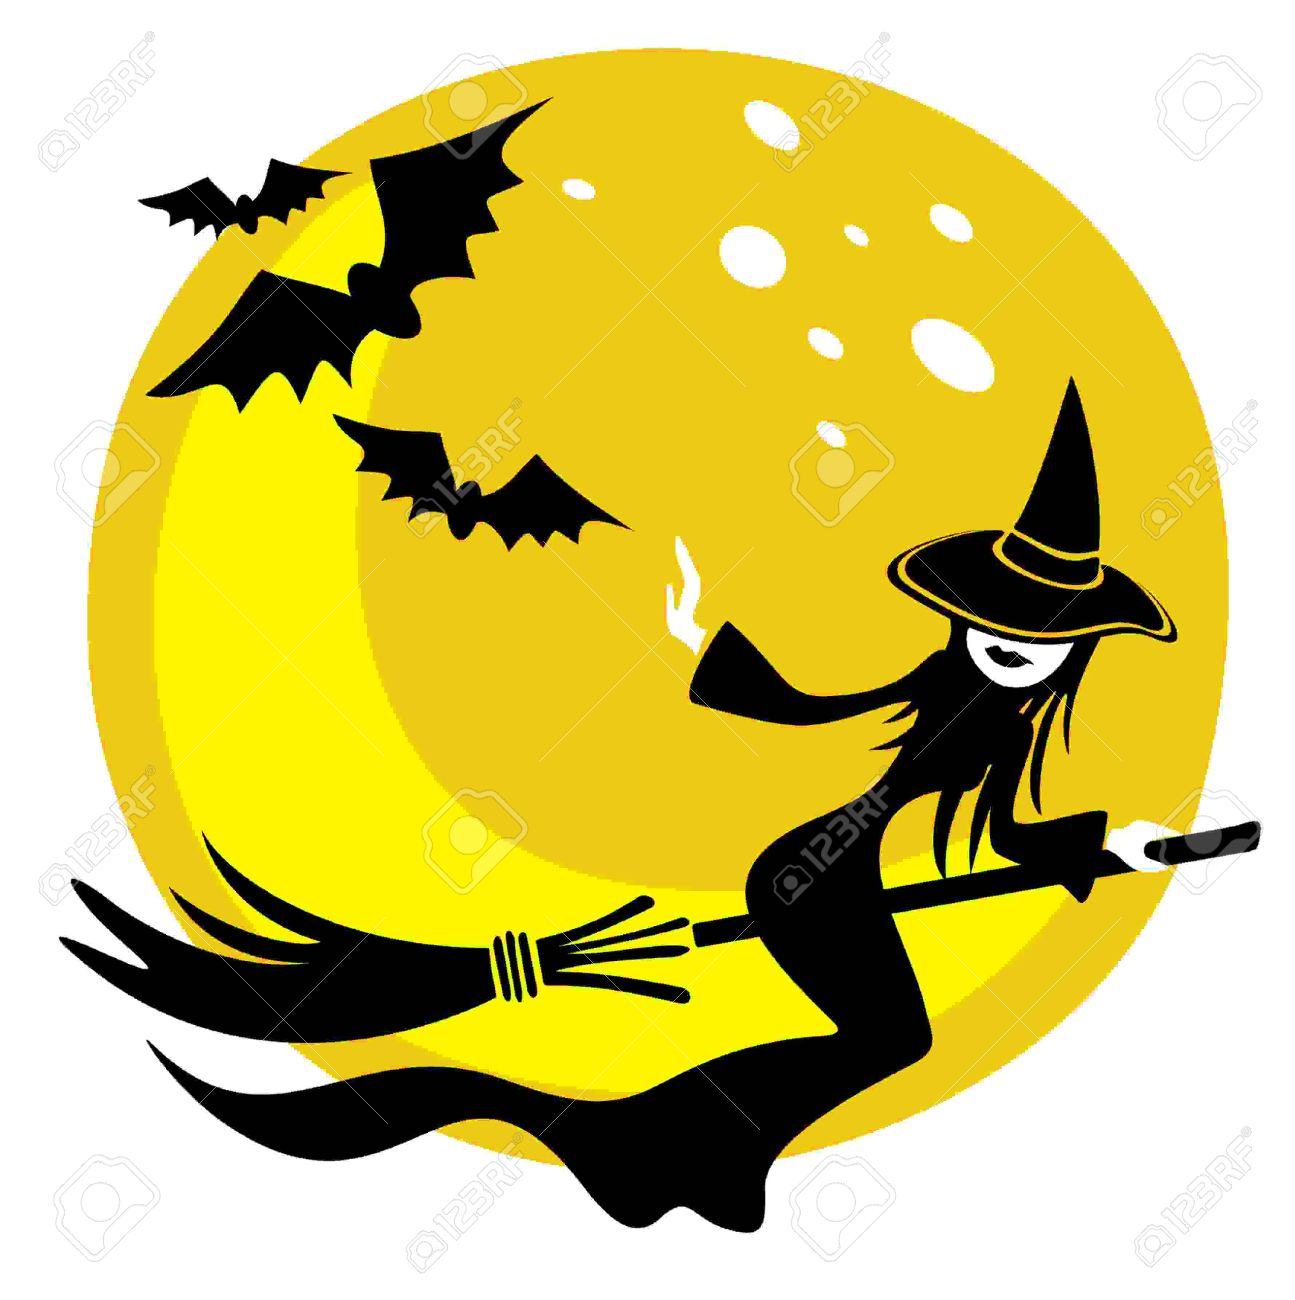 nice flying witch on a moon background halloween illustration stock vector 5260388 - Flying Halloween Witch